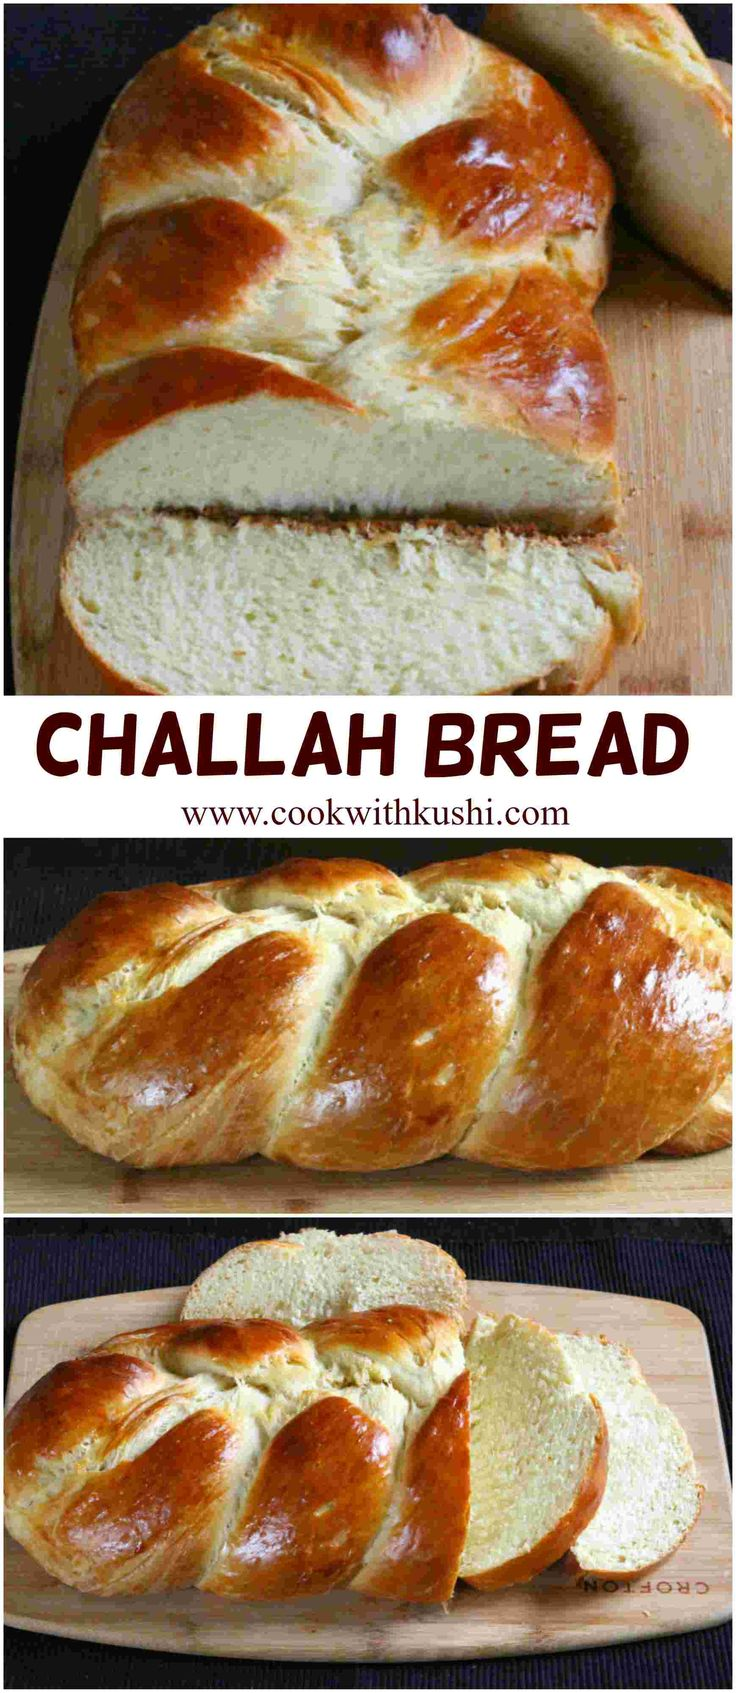 Challah Bread is a soft and super delicious braided, Jewish bread that you must not miss to try out if you really love bread and baking. This truly was a blockbuster  #bread #baking #sweet #vegetarian #breakfast #lunch #dinner @buzzfeedfood